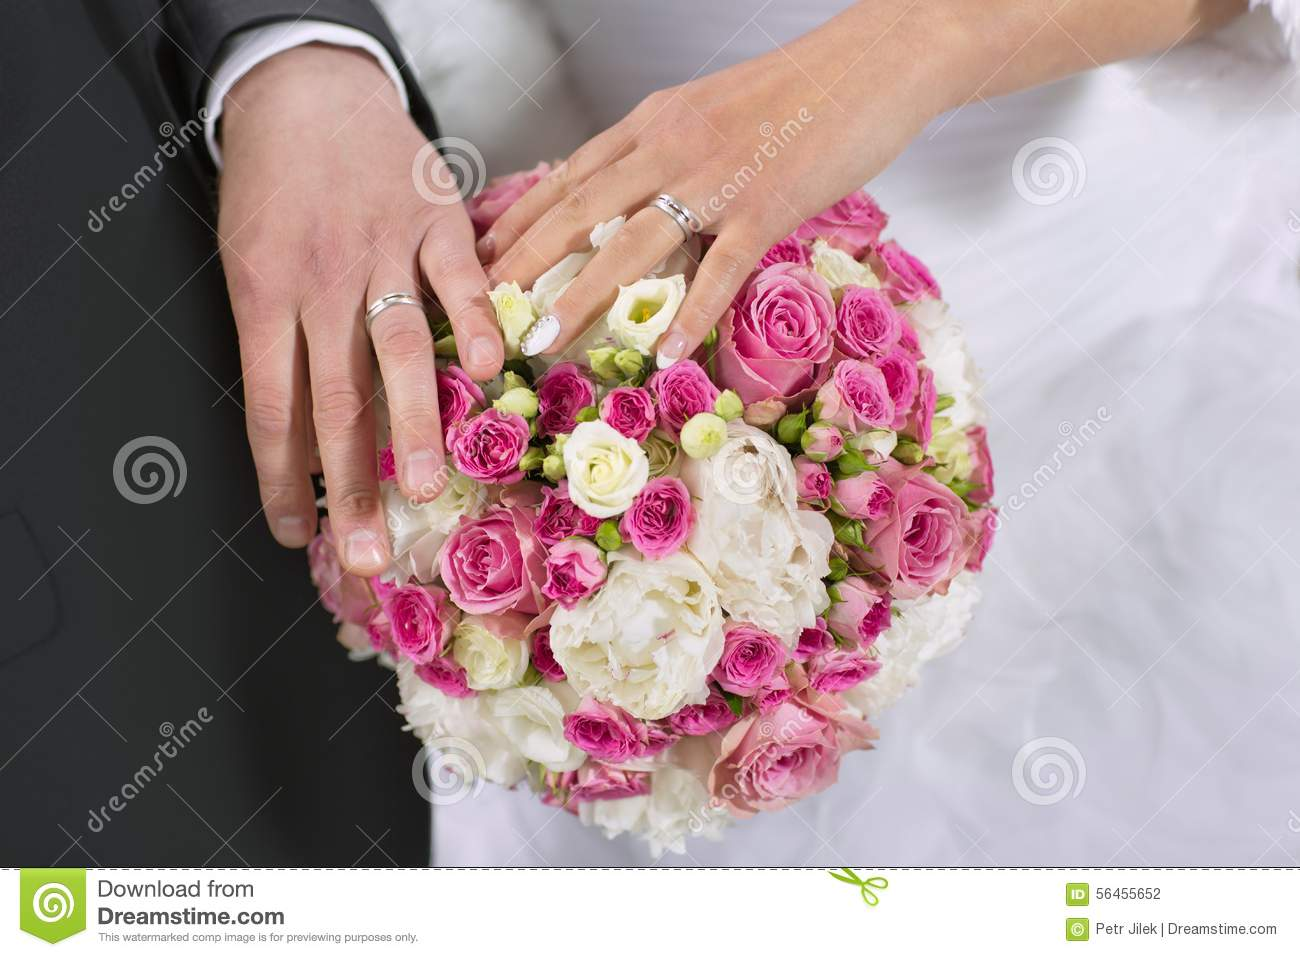 Wedding Rings Hand And Flowers In The Wedding Photo Stock Photo